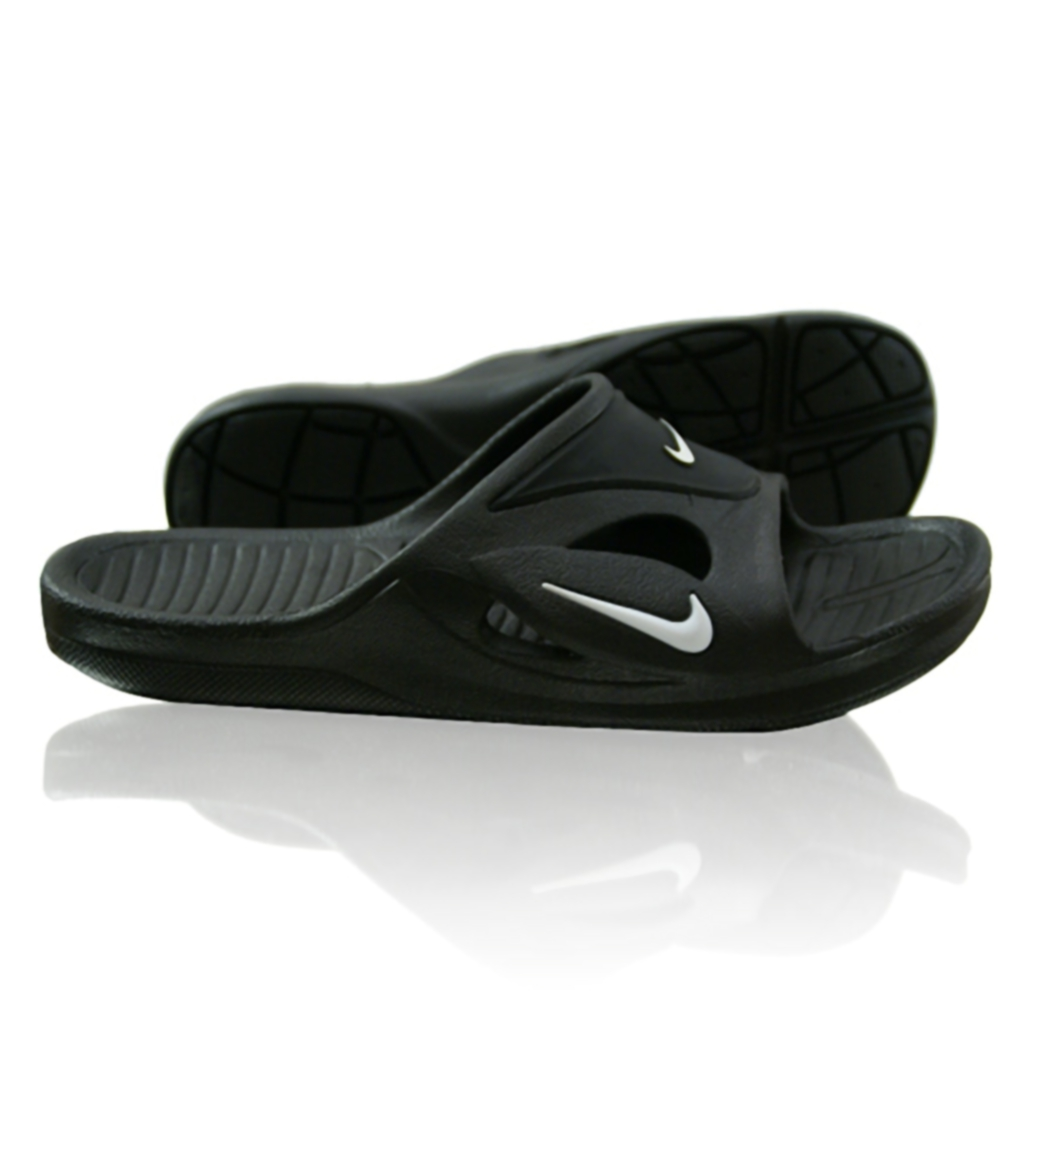 Discontinued Nike Sandals For Men Model Aviation